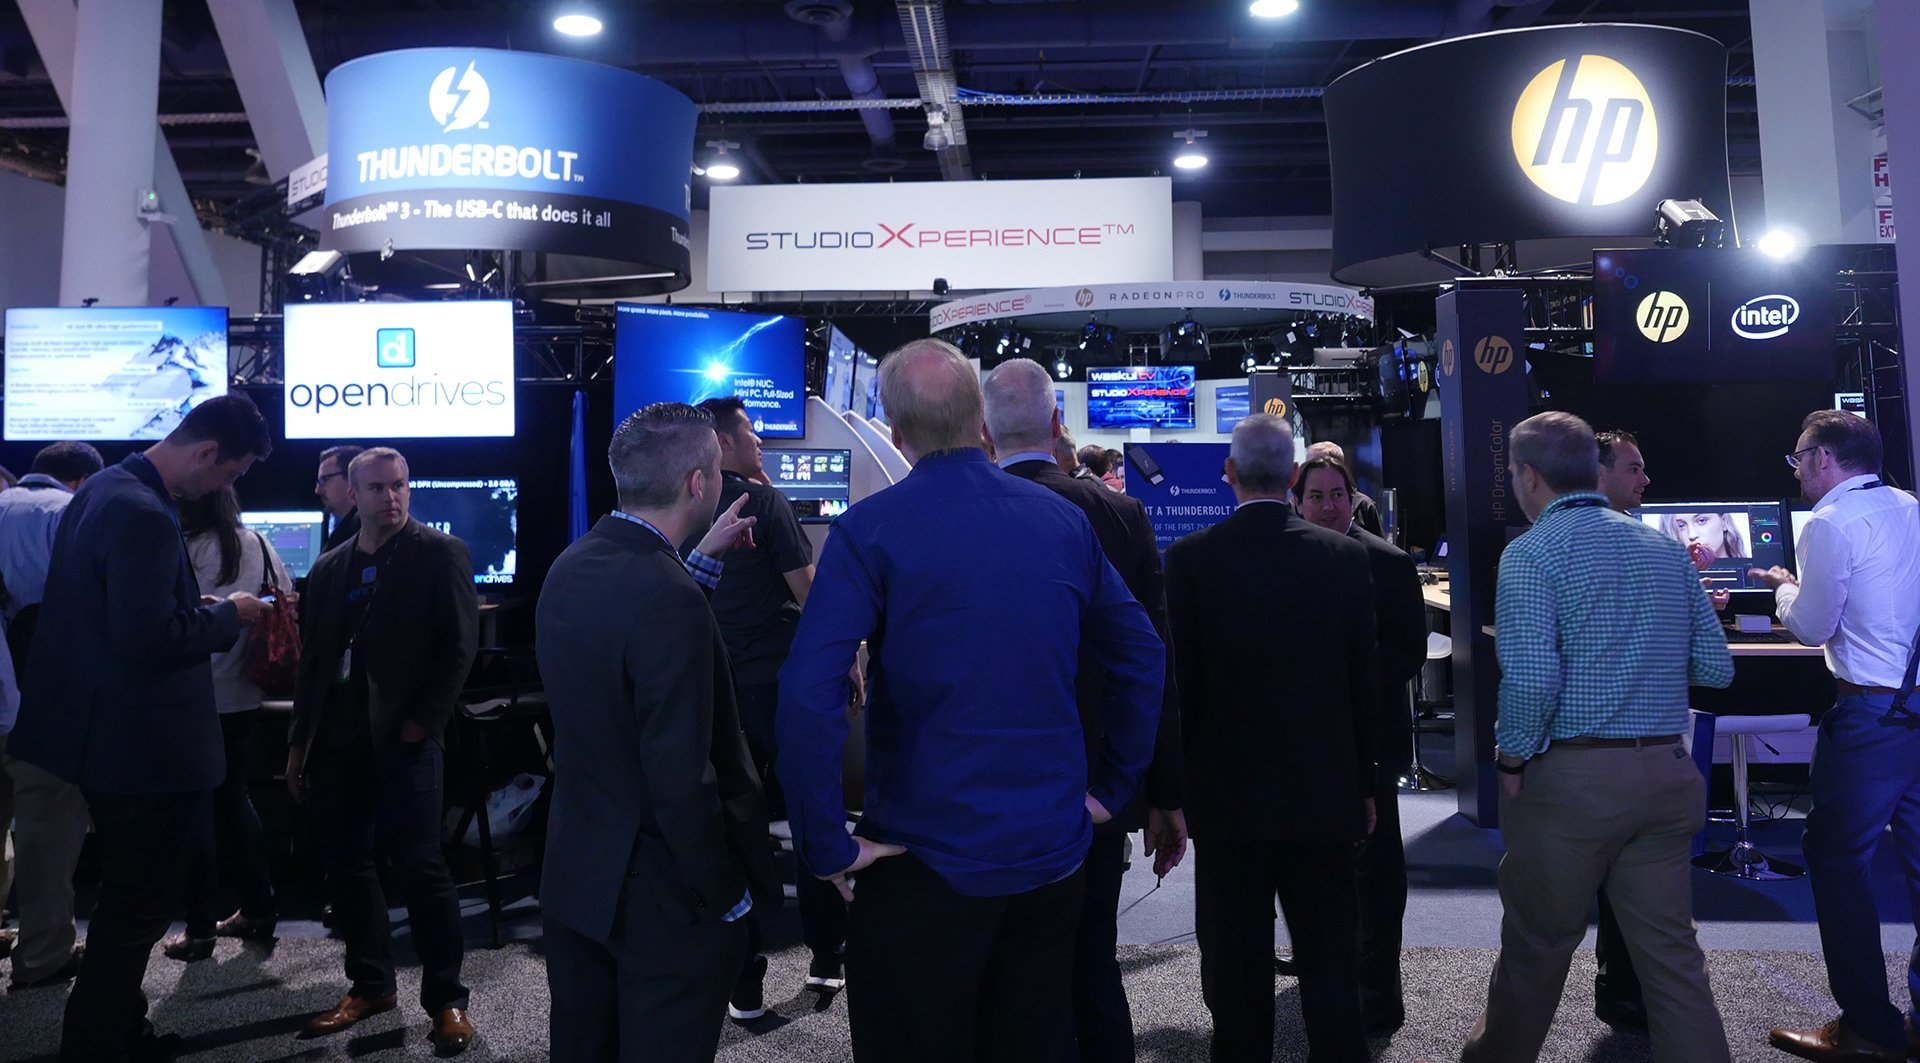 The StudioXperience HP and Thunderbolt Technology Zones at the 2017 NAB Show featured 24 compelling demos for attendees to interact with